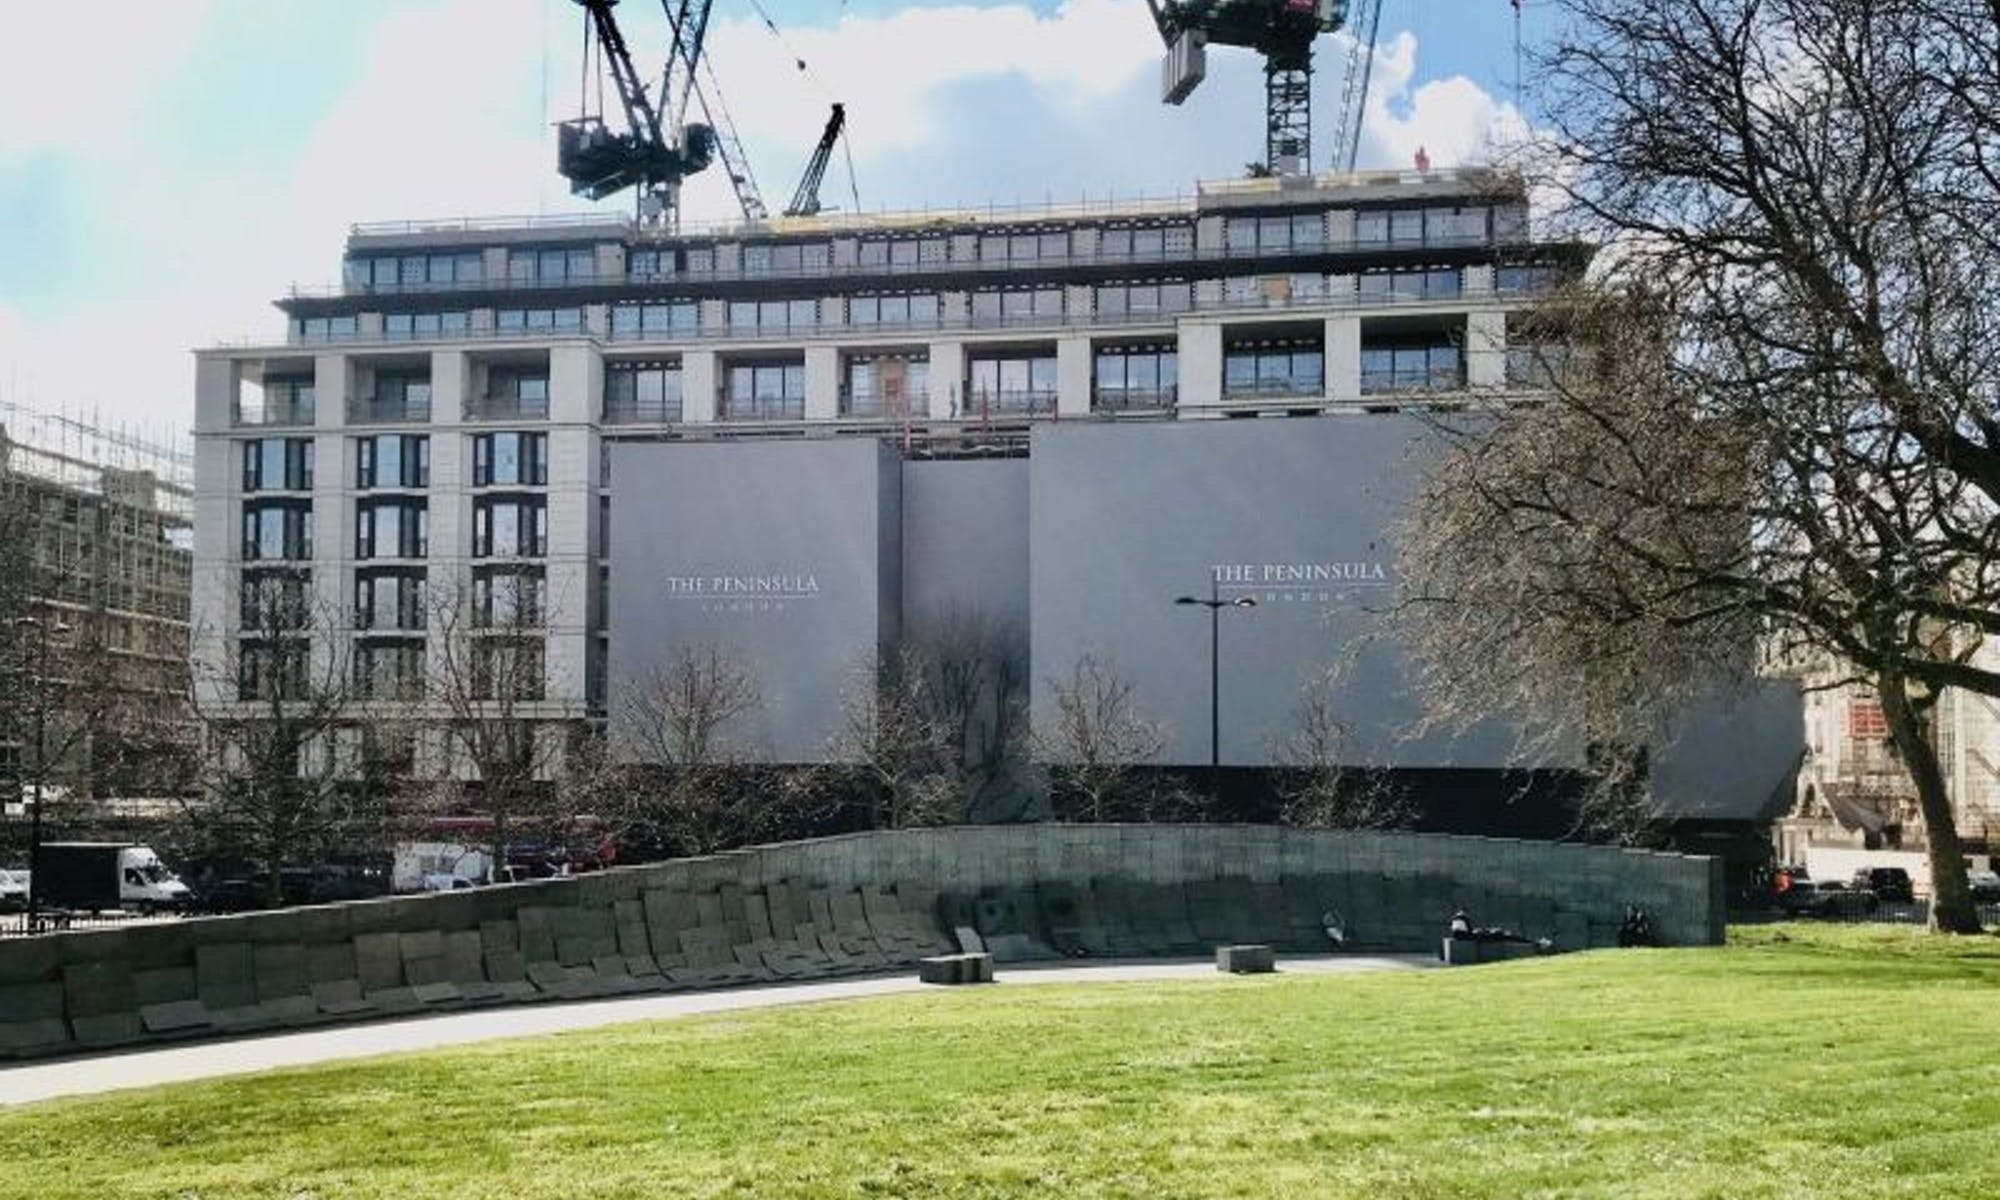 Peninsula London Hotel, Hyde Park uses 30kms of Van Damme cable